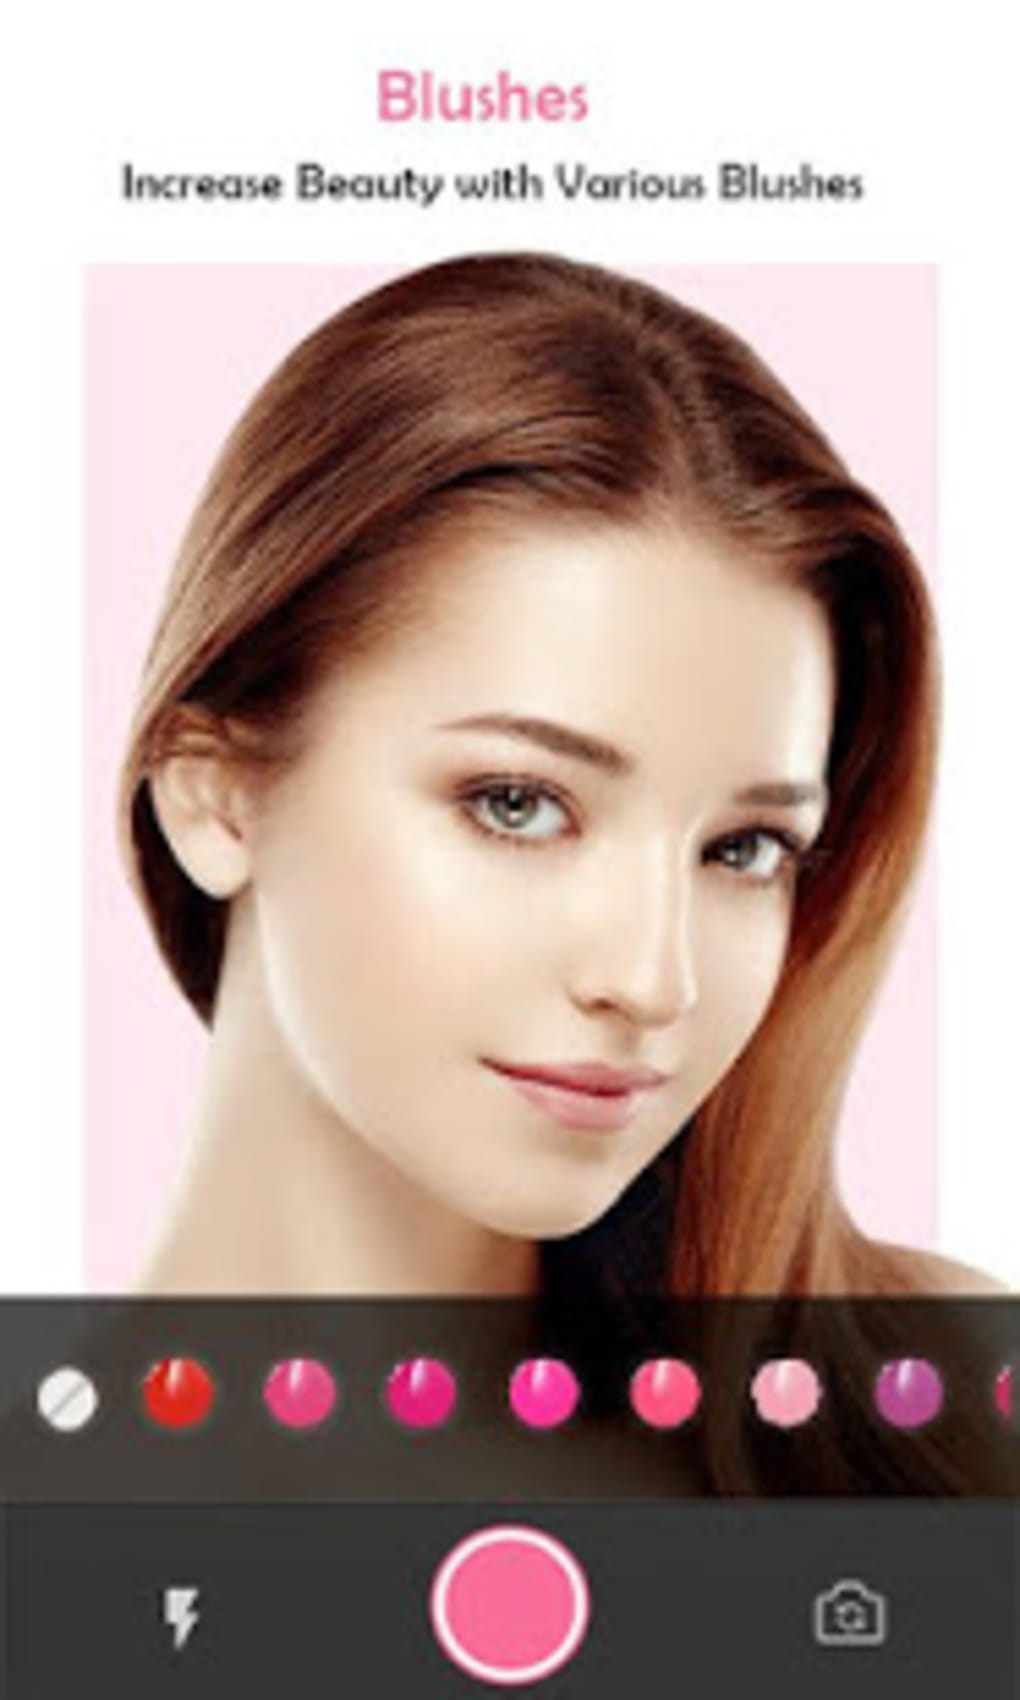 Selfie Beauty Makeup Camera - Face Photo Editor for Android